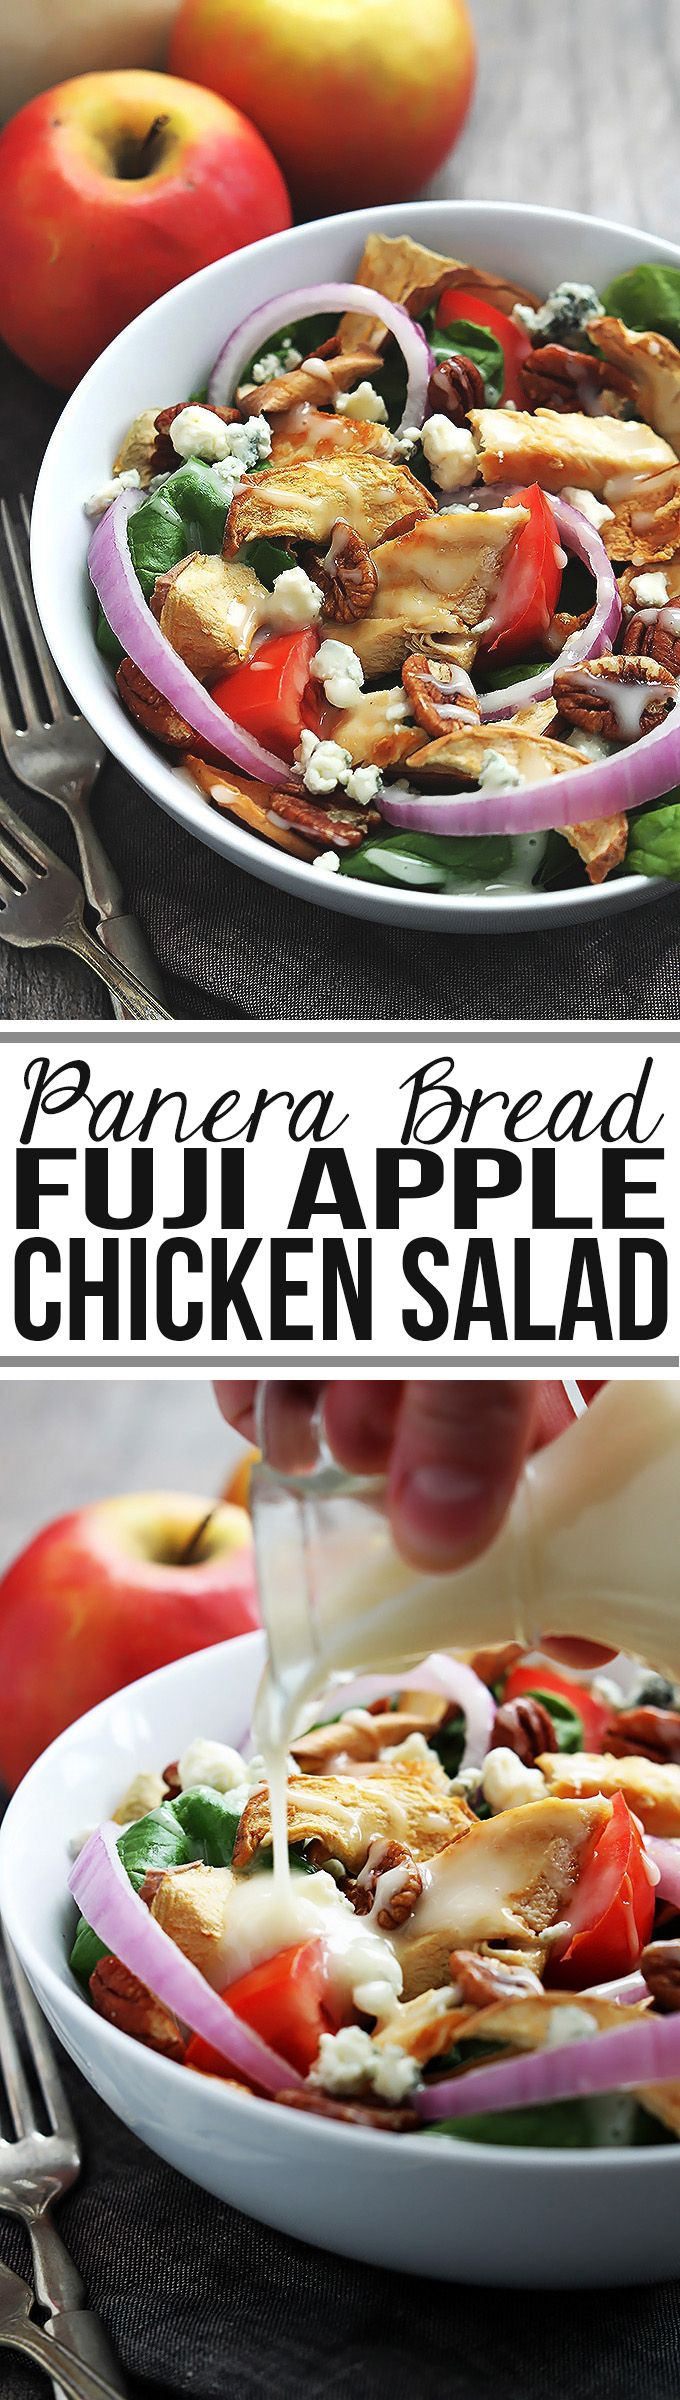 Panera Bread's Fuji Apple Chicken Salad - easy, healthy, and soooo yummy! (Chicken And Apple Recipes)